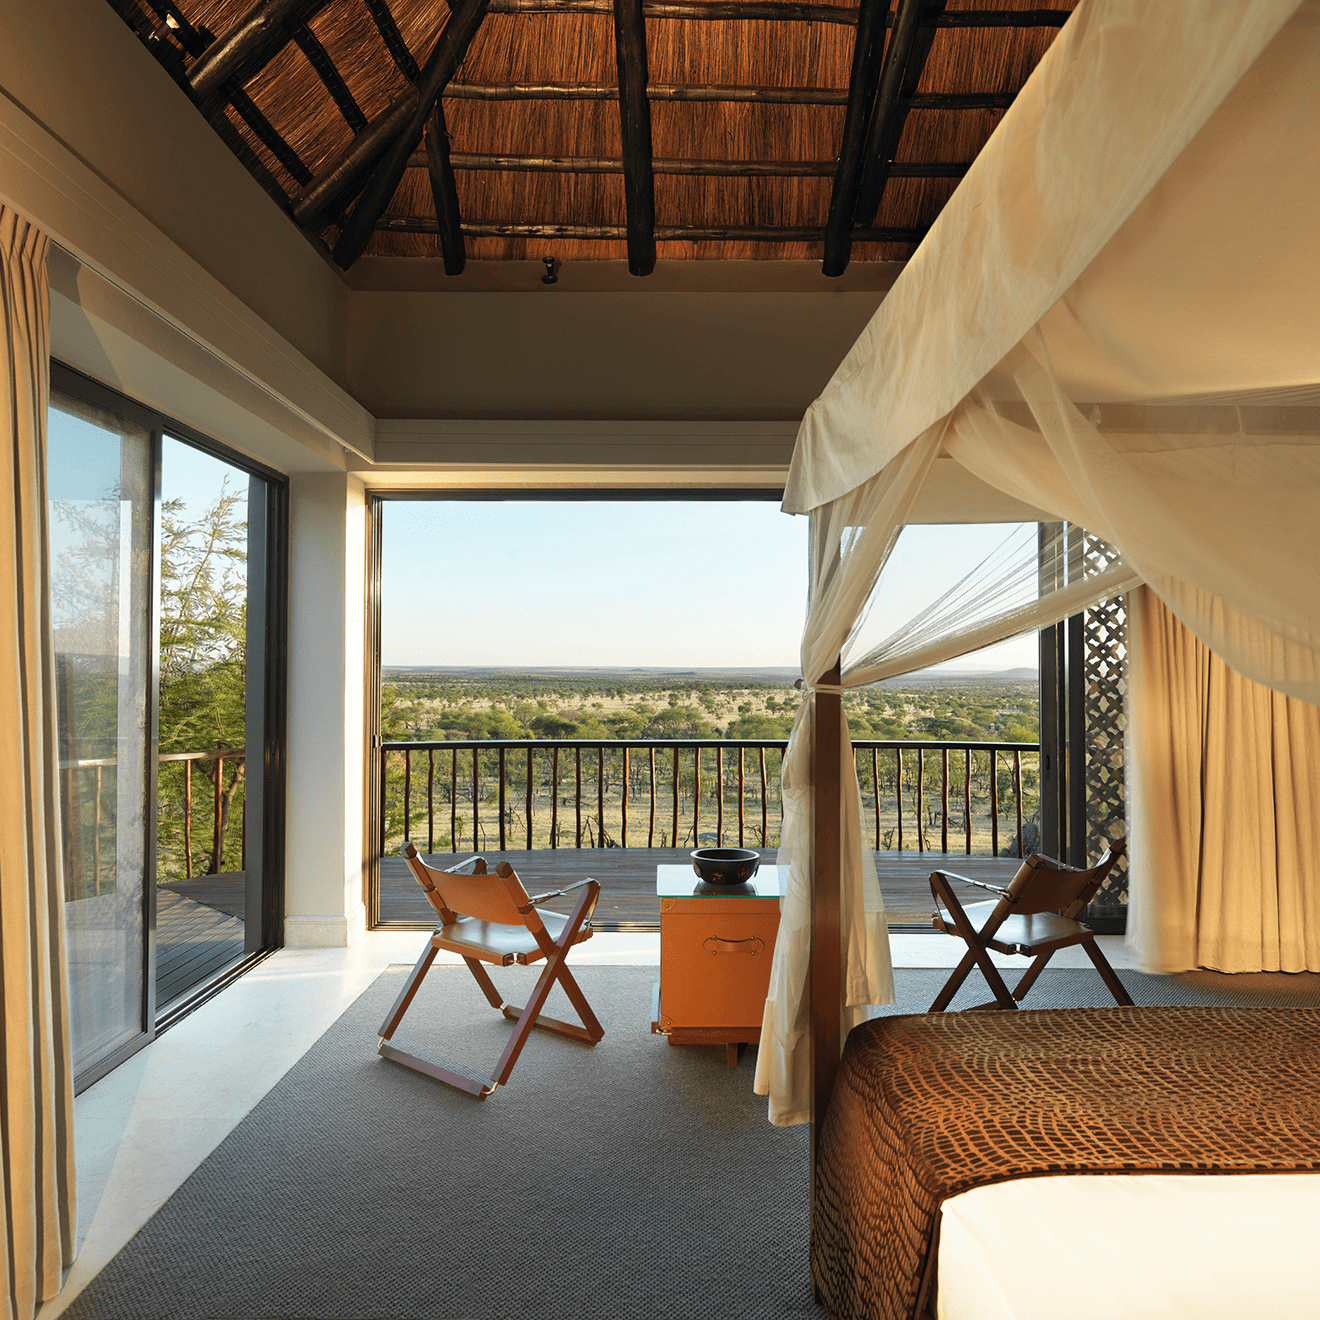 a bedroom balcony overlooking the Villas at the Four Seasons Serengeti